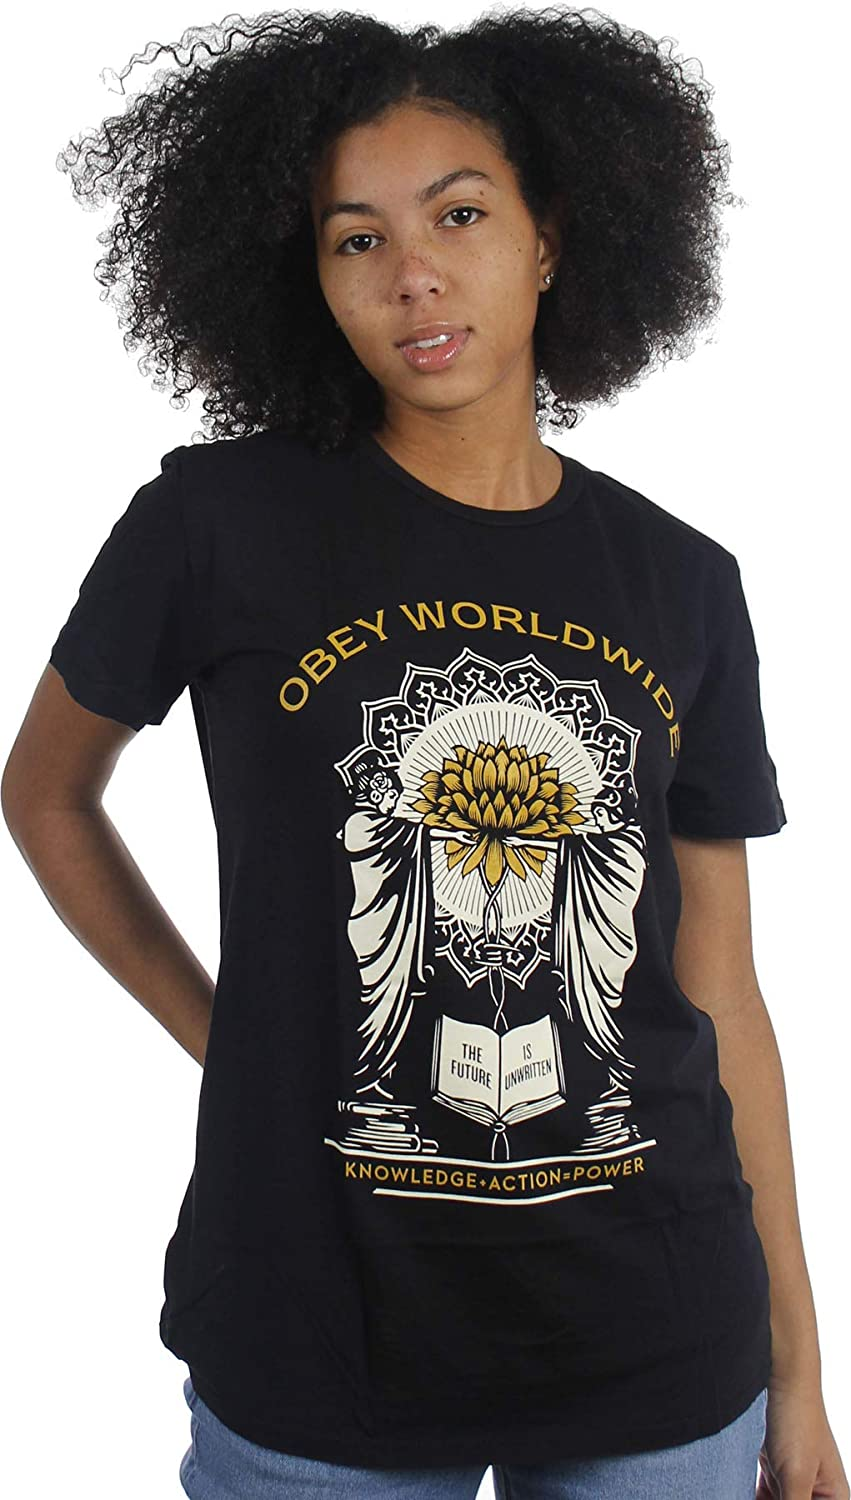 Obey Women's Knowledge & Action 71s2cqTe3ML